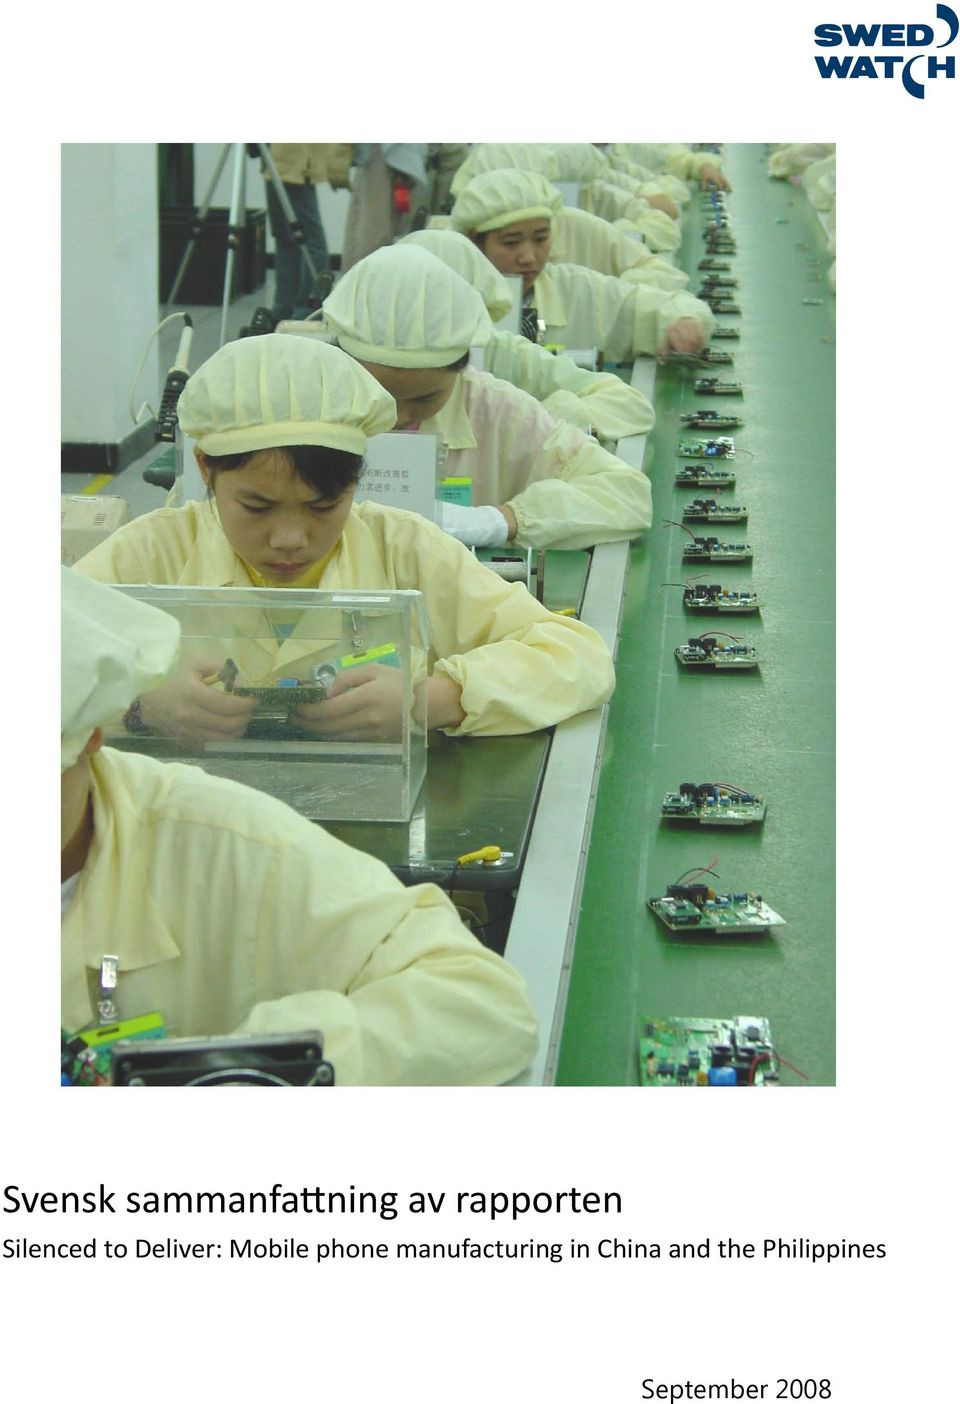 Mobile phone manufacturing in